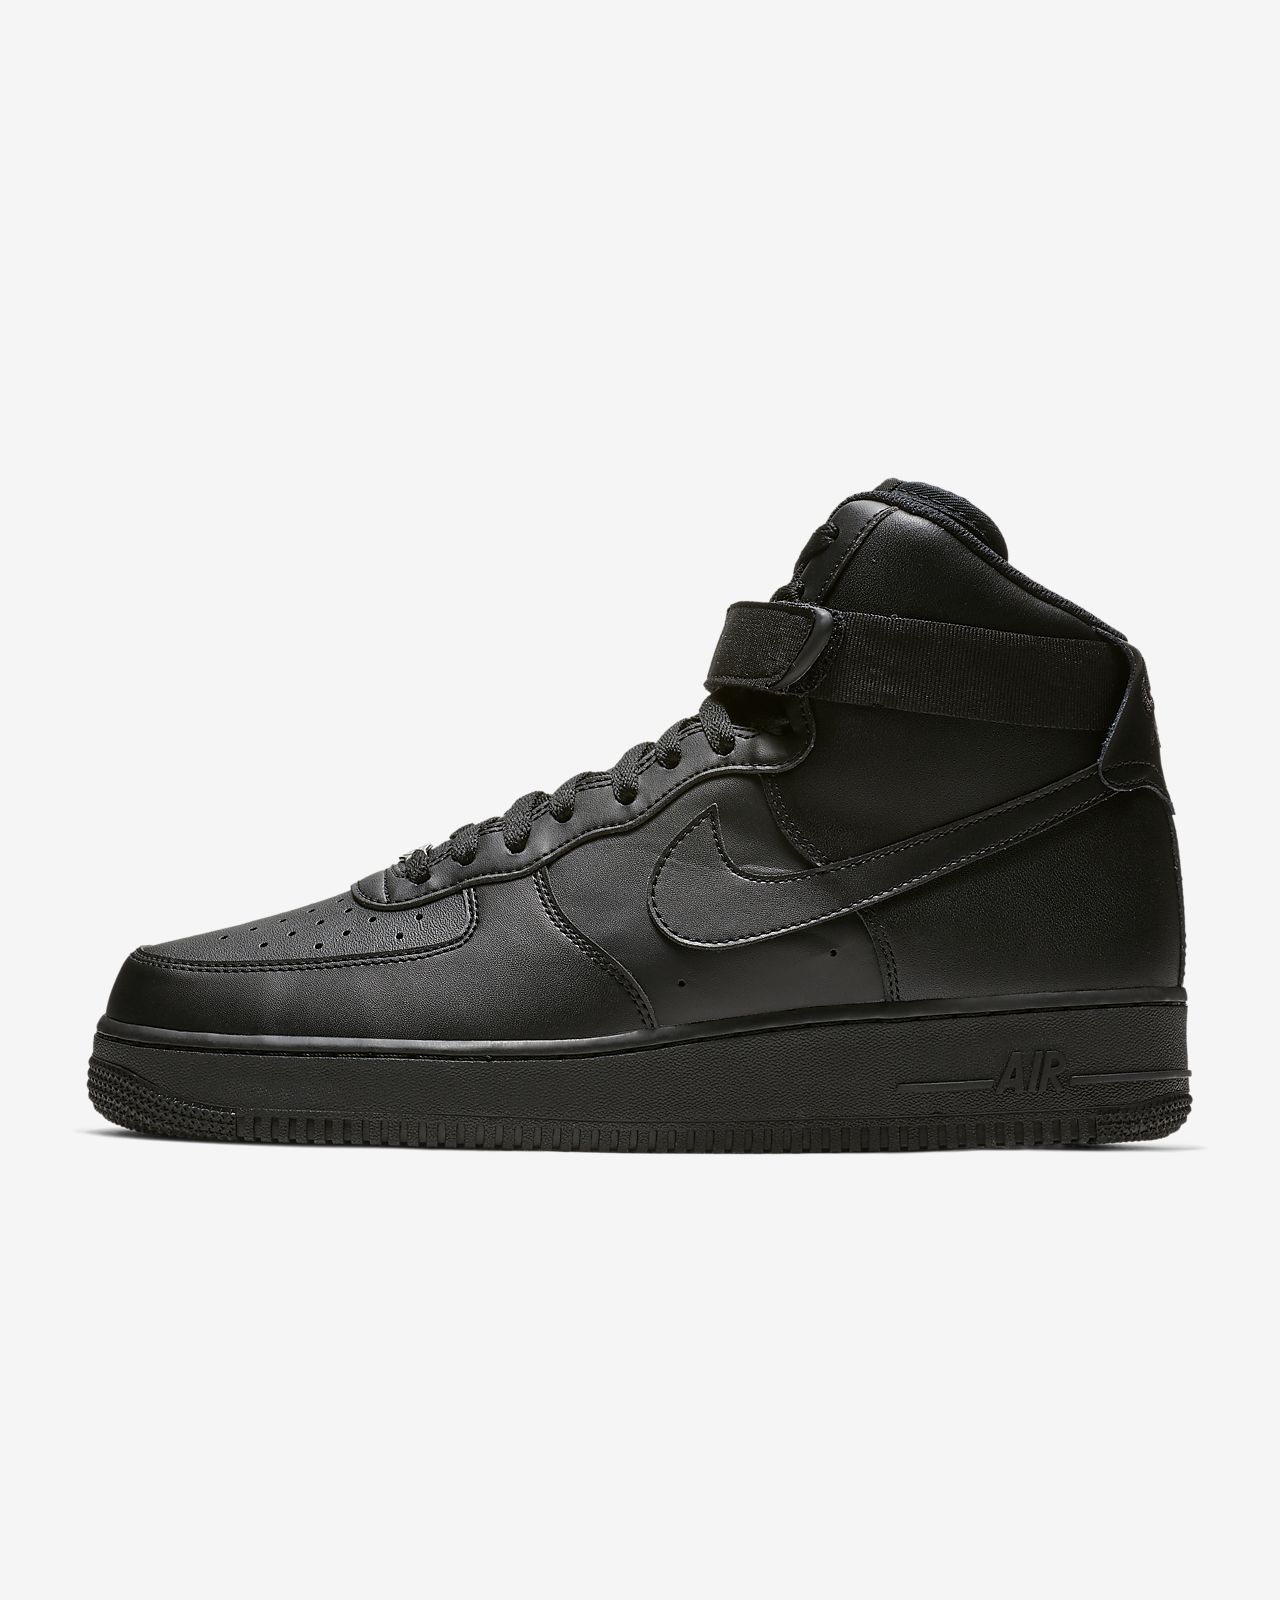 promo code 31661 ef066 ... Nike Air Force 1 High 07 Men s Shoe